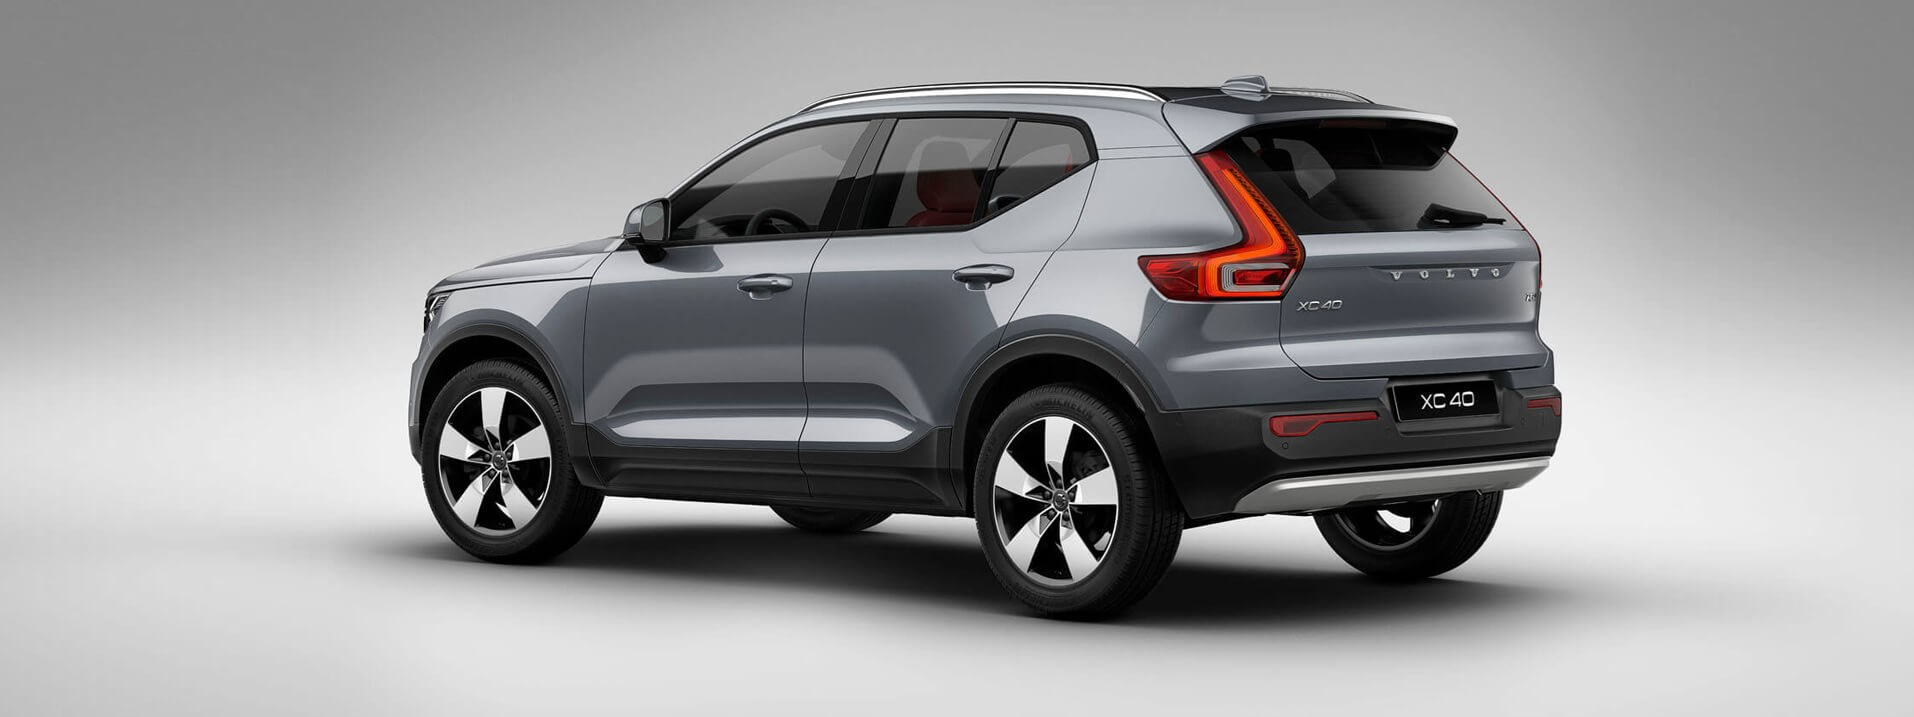 2018 volvo xc40 new car launch calendar. Black Bedroom Furniture Sets. Home Design Ideas